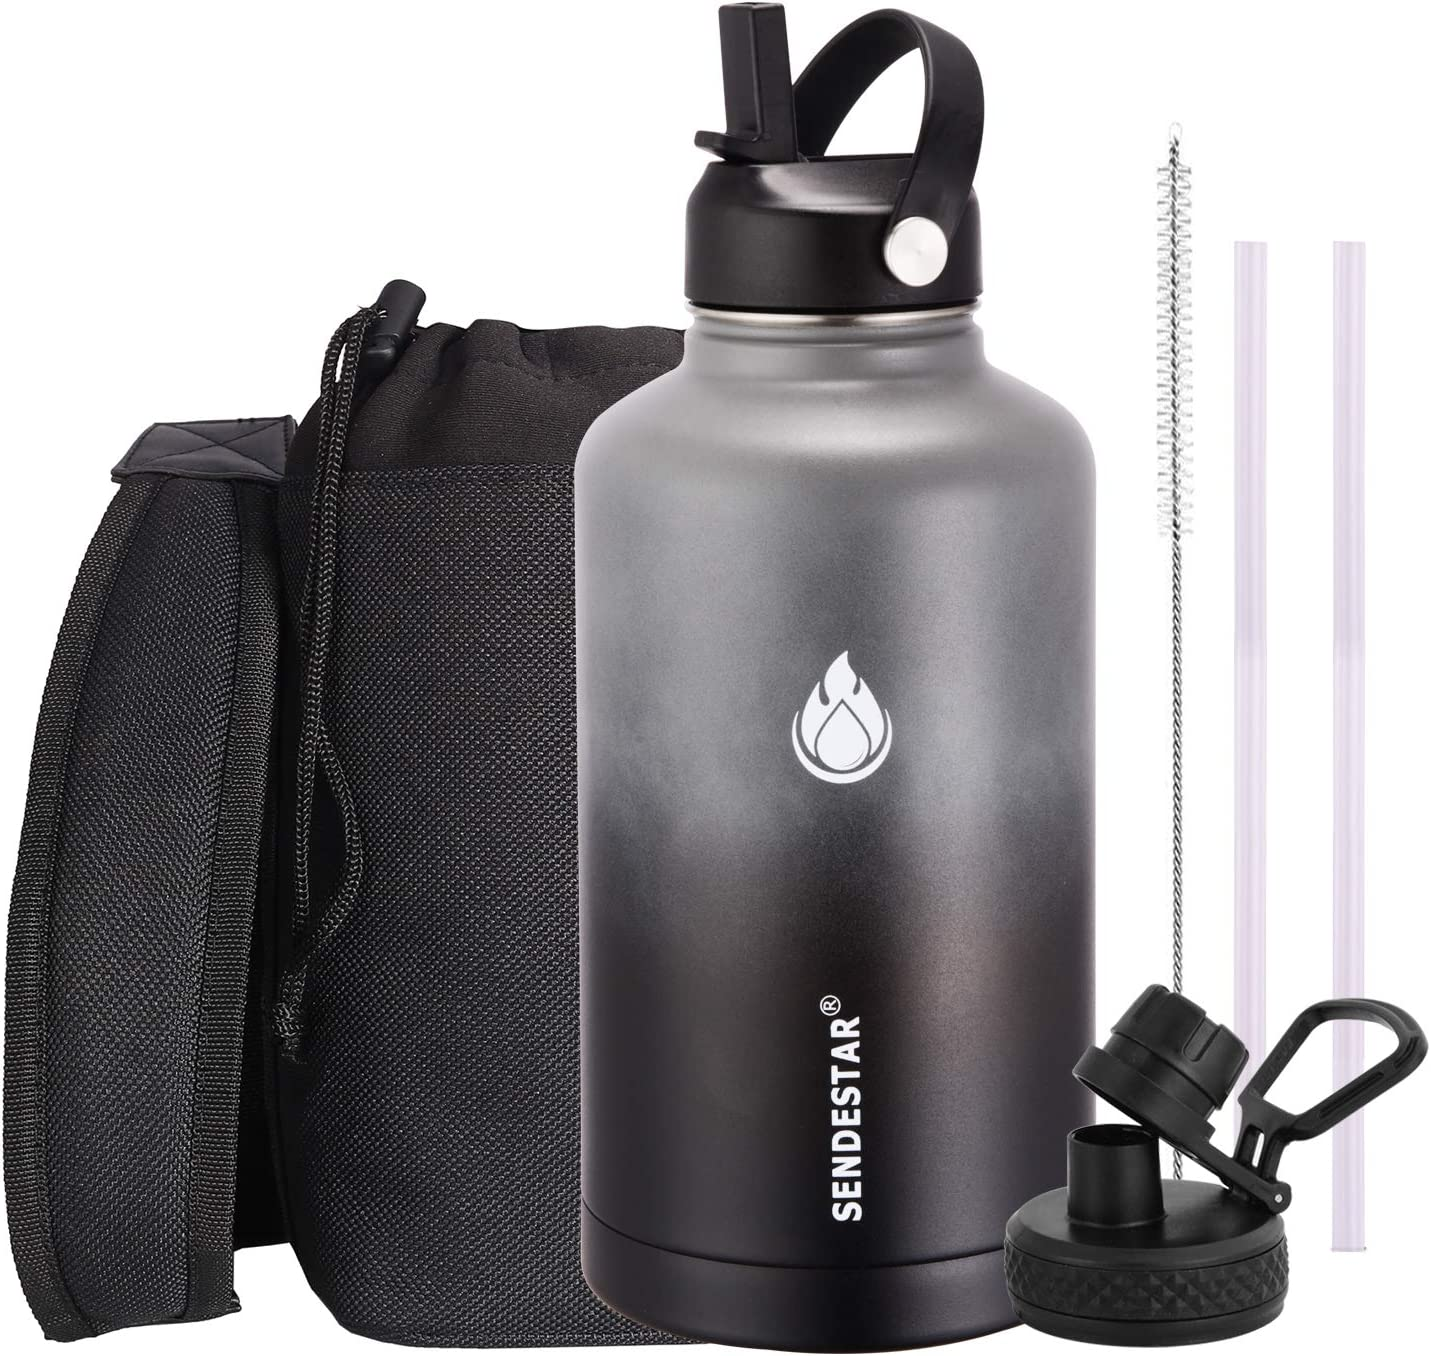 SENDESTAR Water Bottle 64oz Double Wall Vacuum Insulated Leak Proof Stainless Steel Sports Water Bottle—Wide Mouth with New Flex Straw Lid & Spout Lid (Gray&Black)